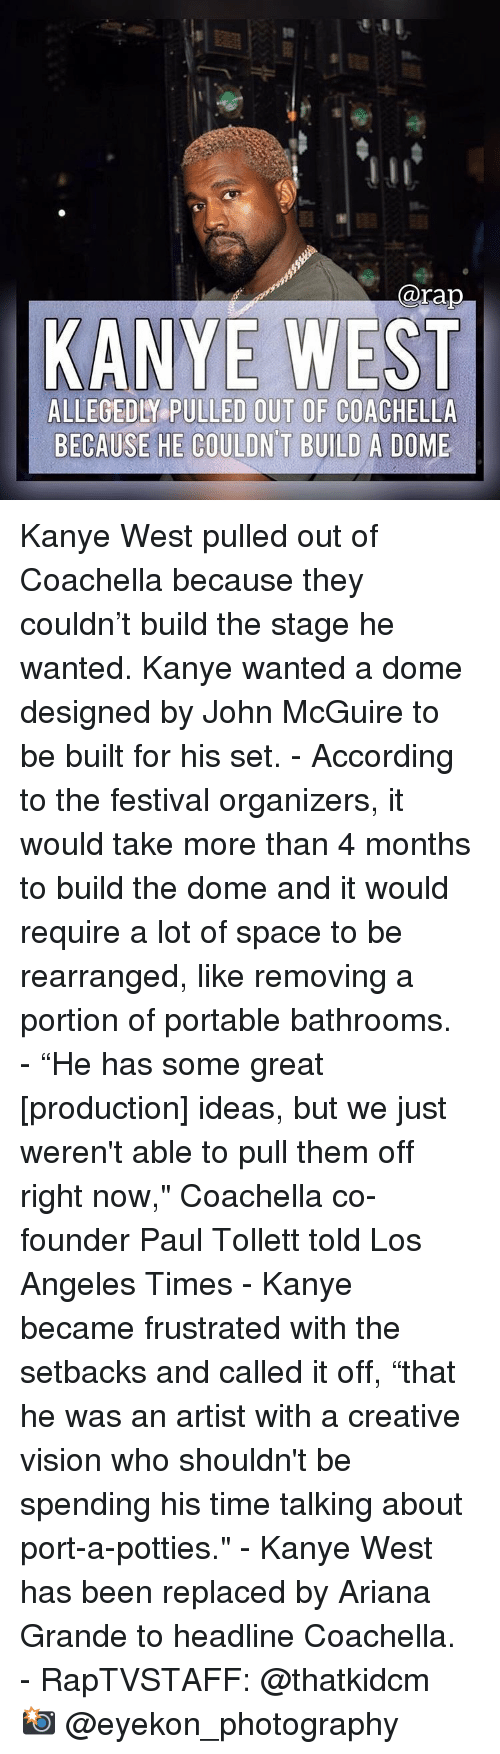 "Ariana Grande, Coachella, and Kanye: @rap  KANYE WEST  ALLEGEDLY PULLED OUT OF COACHELLA  BECAUSE HE COULDN T BUILD A DOME Kanye West pulled out of Coachella because they couldn't build the stage he wanted. Kanye wanted a dome designed by John McGuire to be built for his set.⁣ -⁣ According to the festival organizers, it would take more than 4 months to build the dome and it would require a lot of space to be rearranged, like removing a portion of portable bathrooms.⁣ -⁣ ""He has some great [production] ideas, but we just weren't able to pull them off right now,"" Coachella co-founder Paul Tollett told Los Angeles Times⁣ -⁣ Kanye became frustrated with the setbacks and called it off, ""that he was an artist with a creative vision who shouldn't be spending his time talking about port-a-potties.""⁣ -⁣ Kanye West has been replaced by Ariana Grande to headline Coachella.⁣ -⁣ RapTVSTAFF: @thatkidcm⁣ 📸 @eyekon_photography⁣"